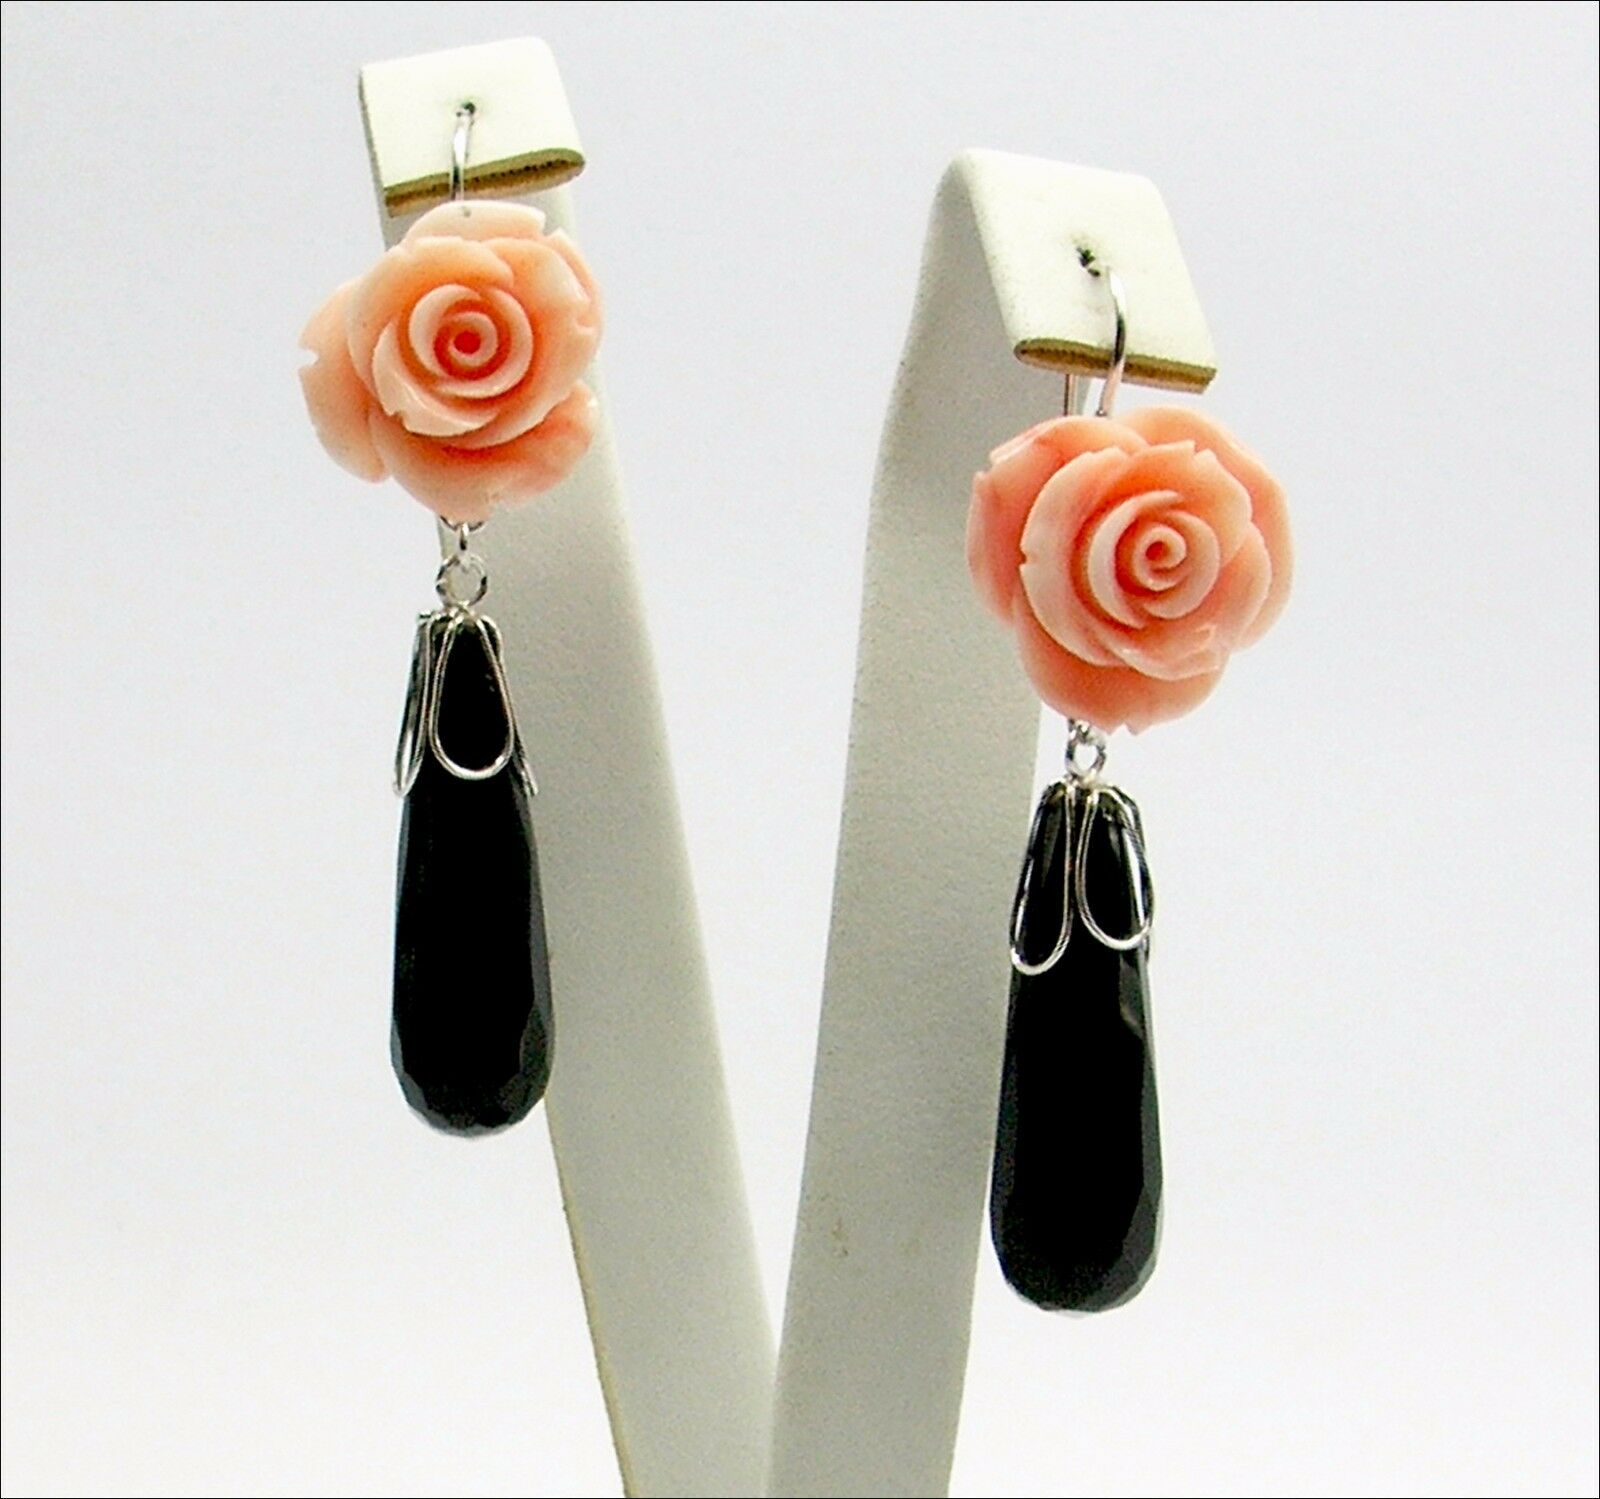 18k WHITE gold EARRINGS - PINK CORAL pinkS AND ONYX                   -OBHT 040-